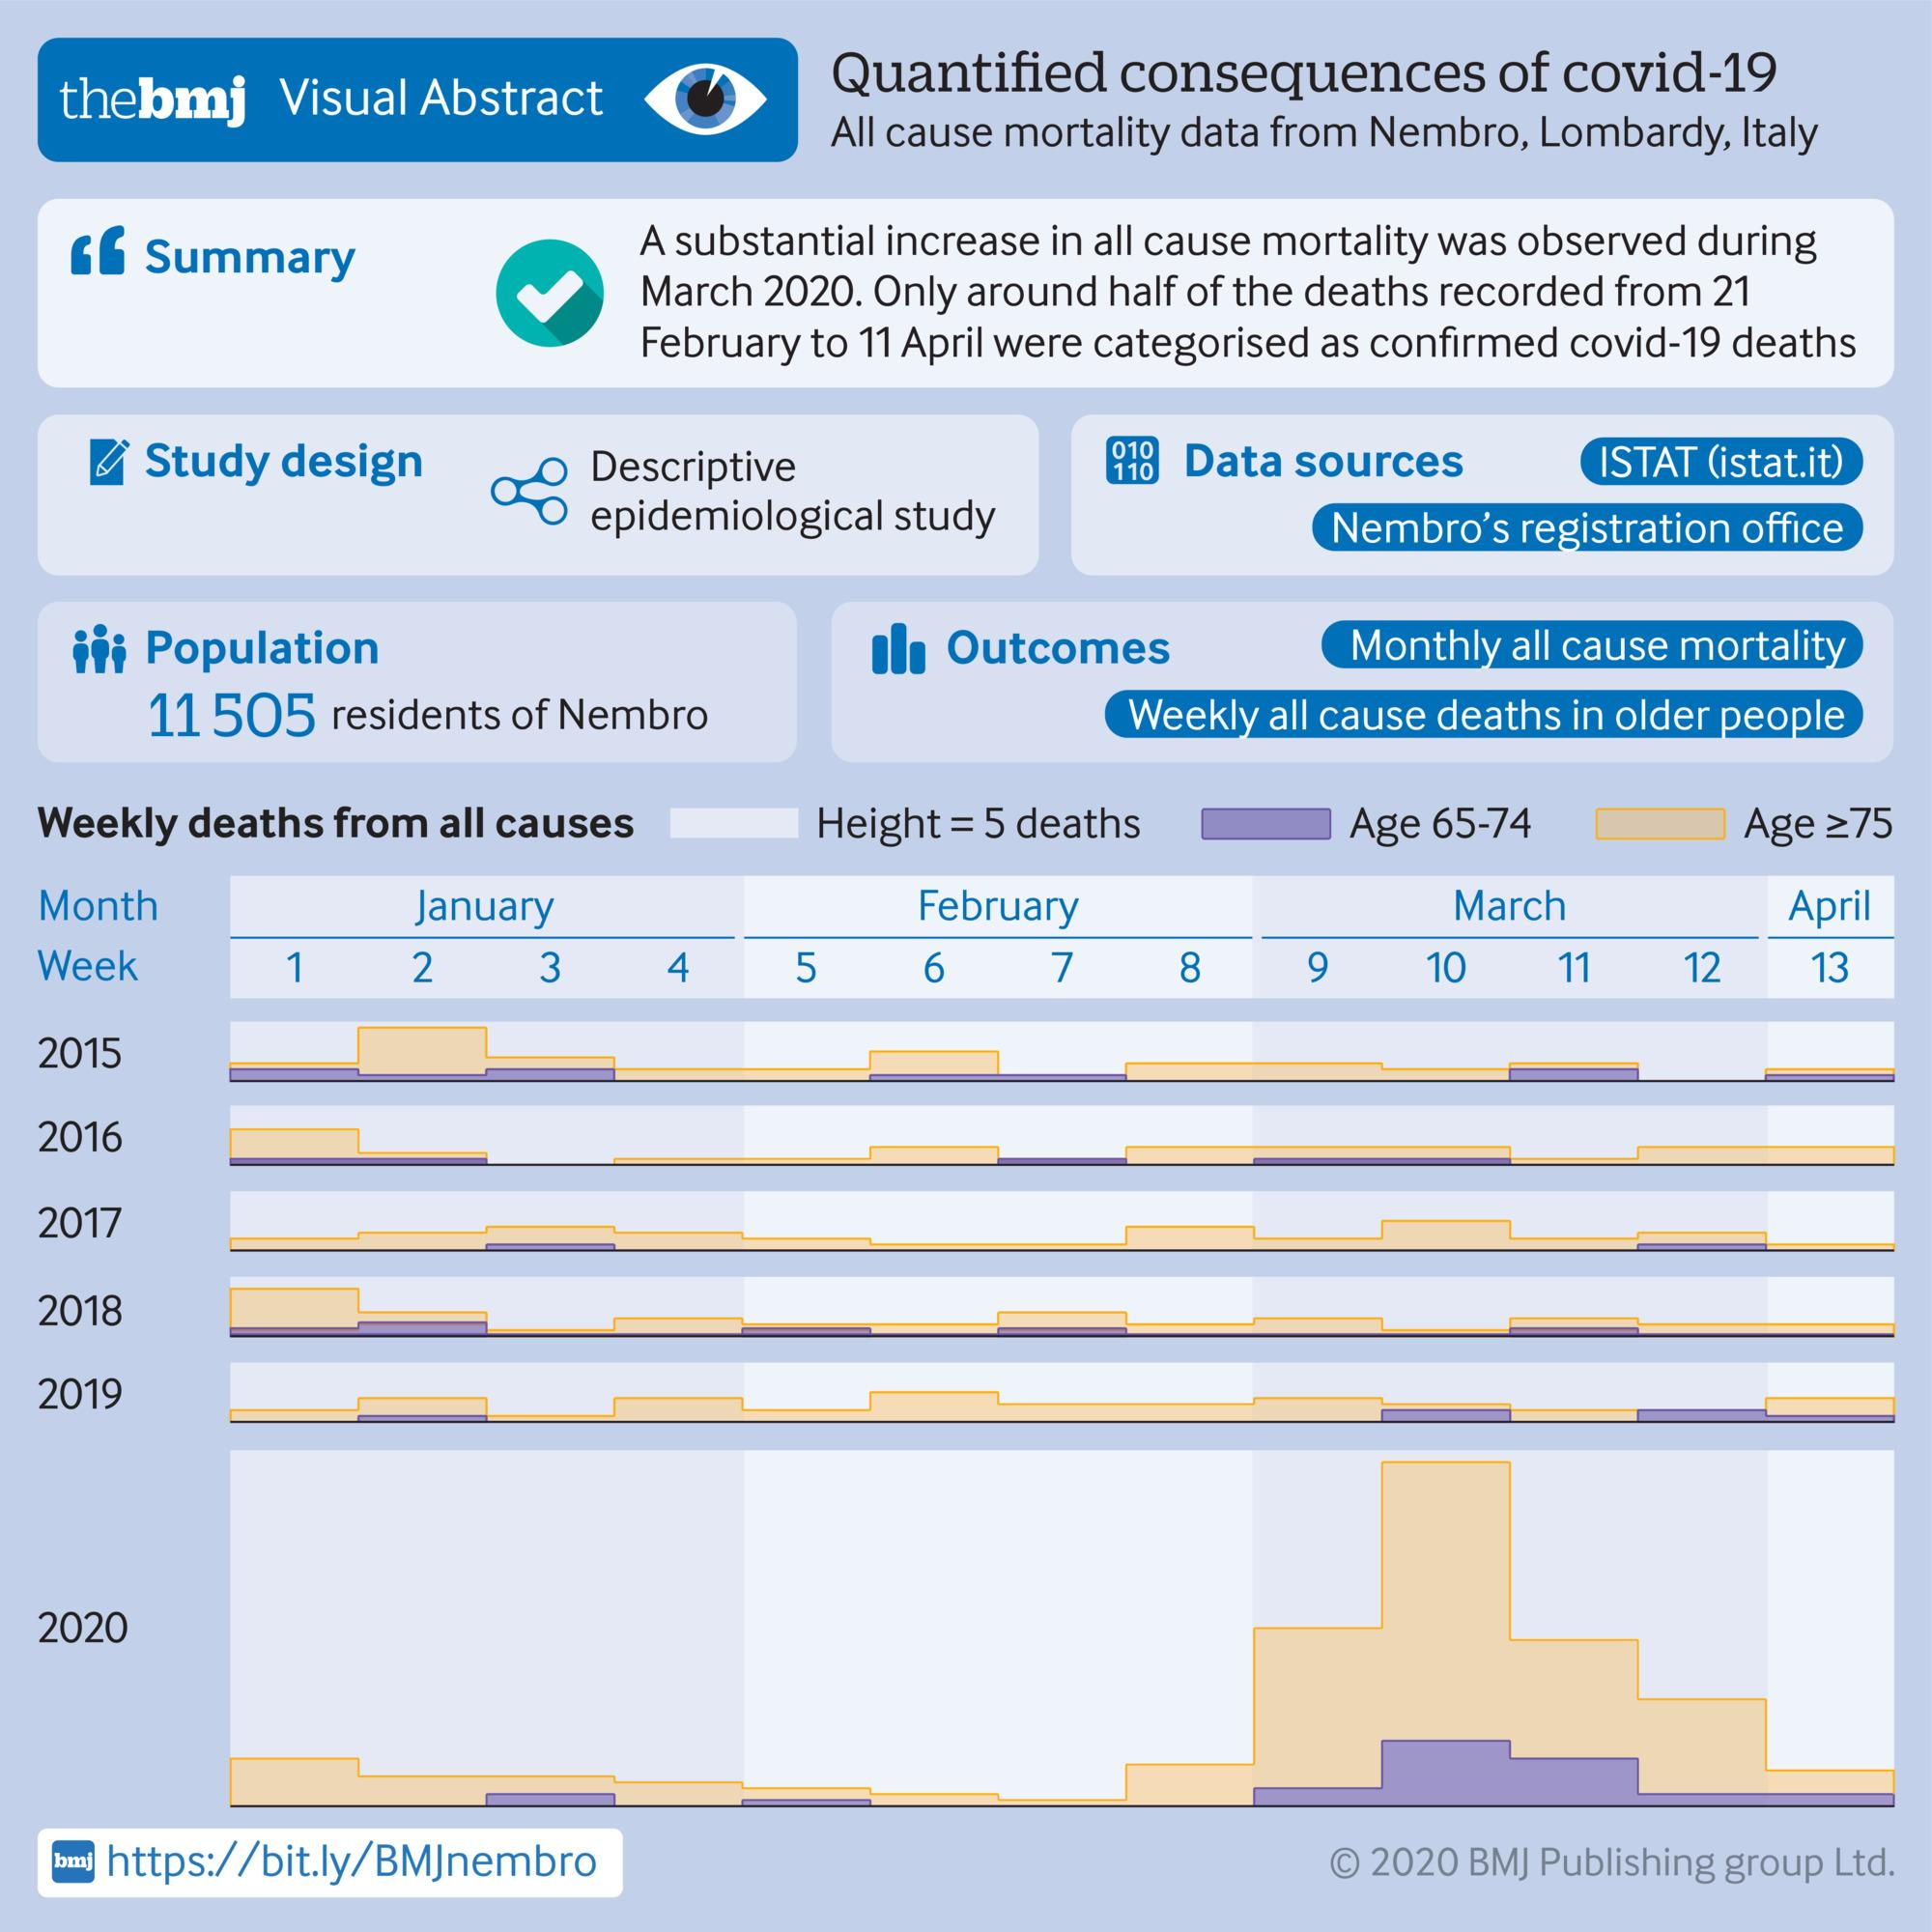 Quantified consequences of covid-19: All cause mortality dta from Nembro, Lombardy, Italy